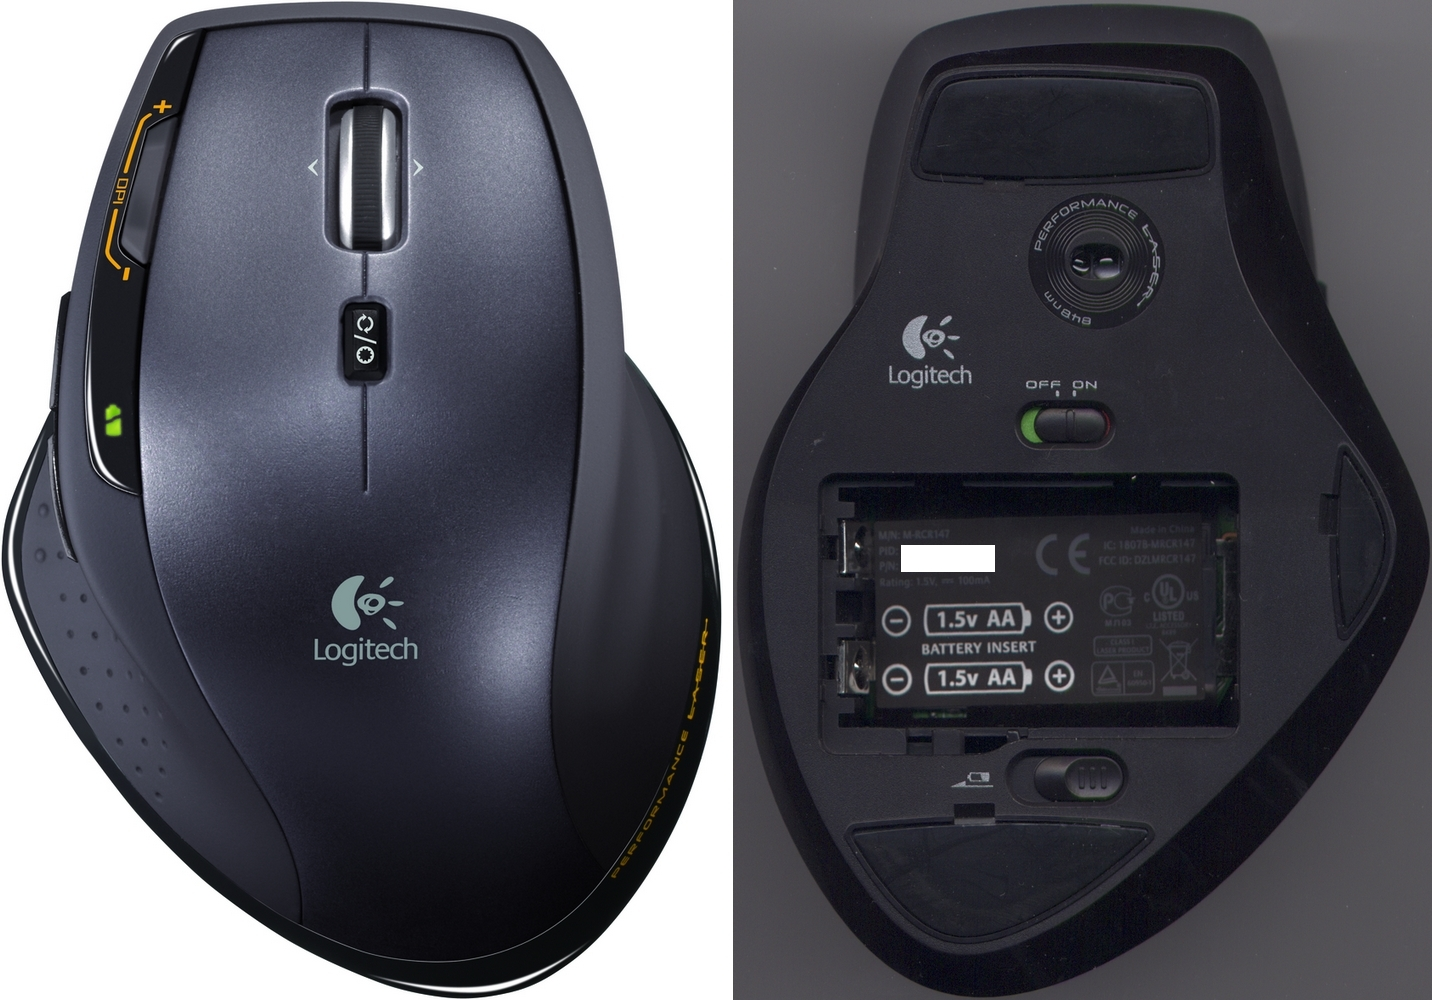 LOGITECH C-UBF34 MOUSE CONNECTION WINDOWS 8 DRIVER DOWNLOAD